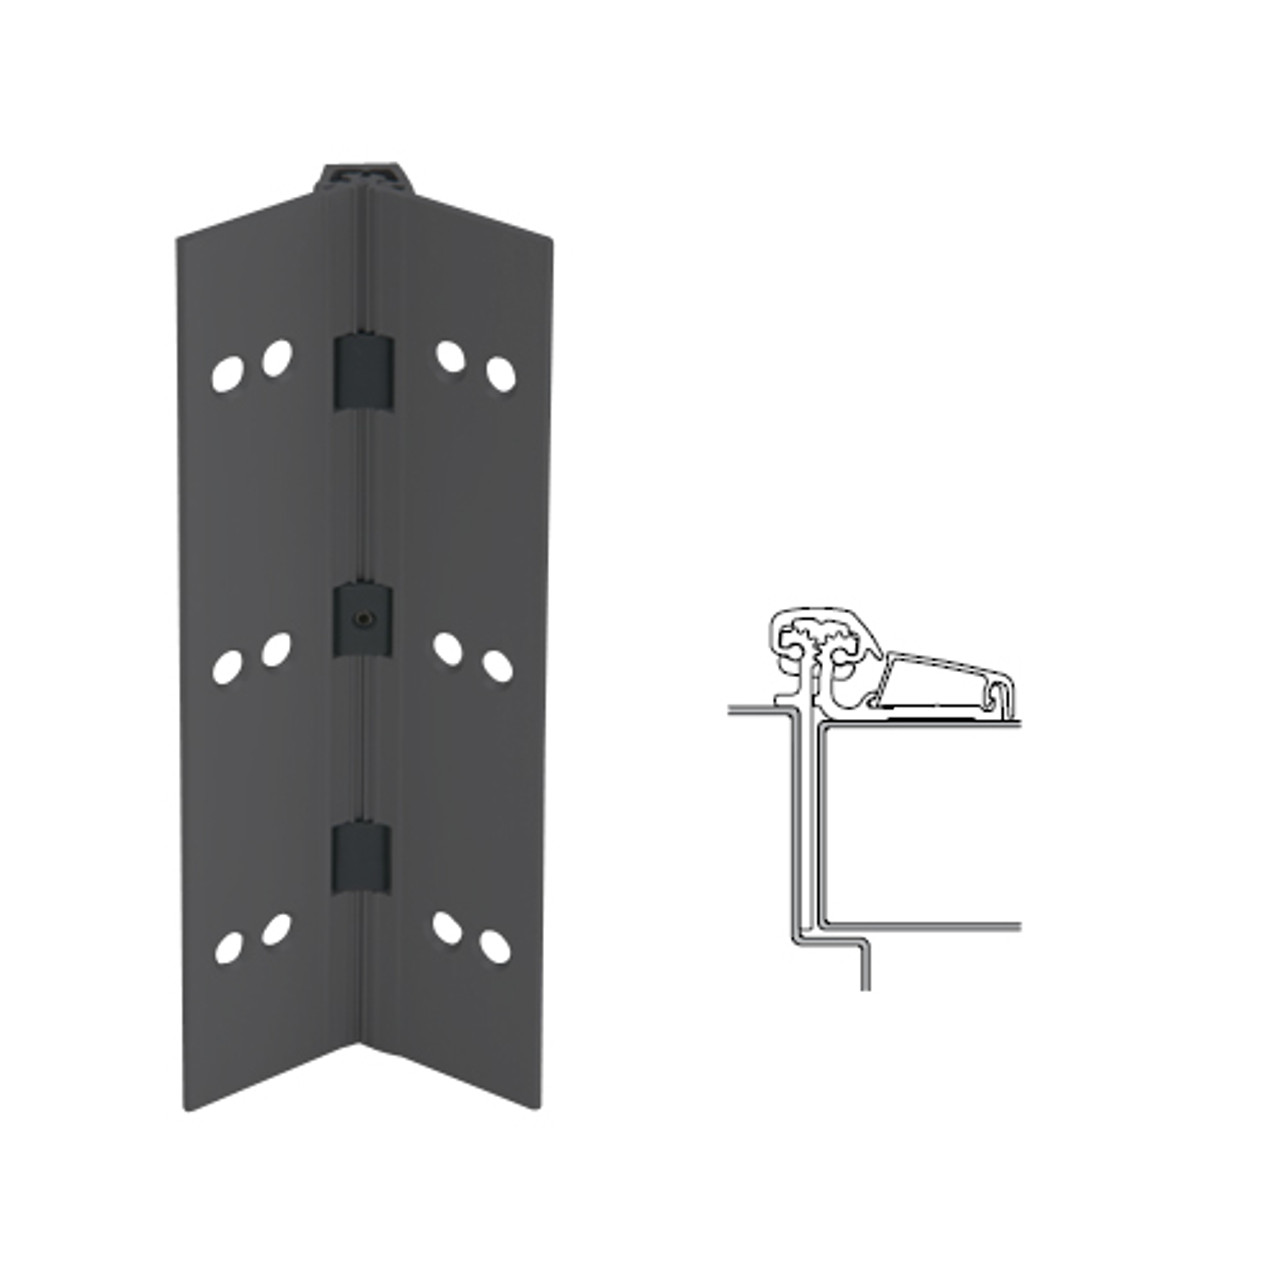 054XY-315AN-120-SECWDHM IVES Adjustable Half Surface Continuous Geared Hinges with Security Screws - Hex Pin Drive in Anodized Black